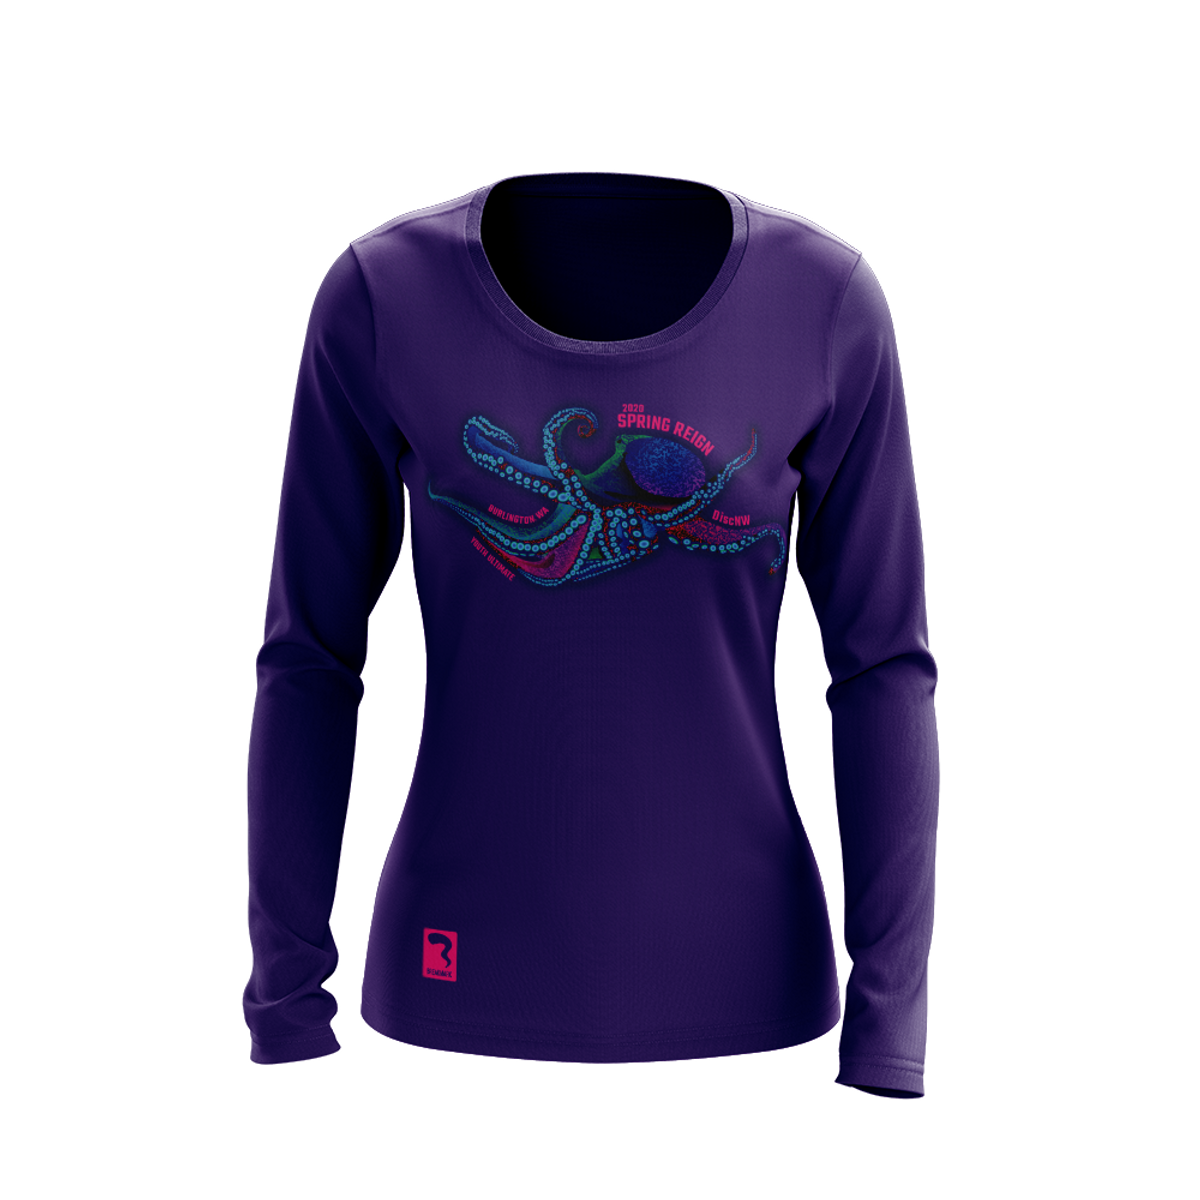 Spring Reign Purple Sub Long Sleeve